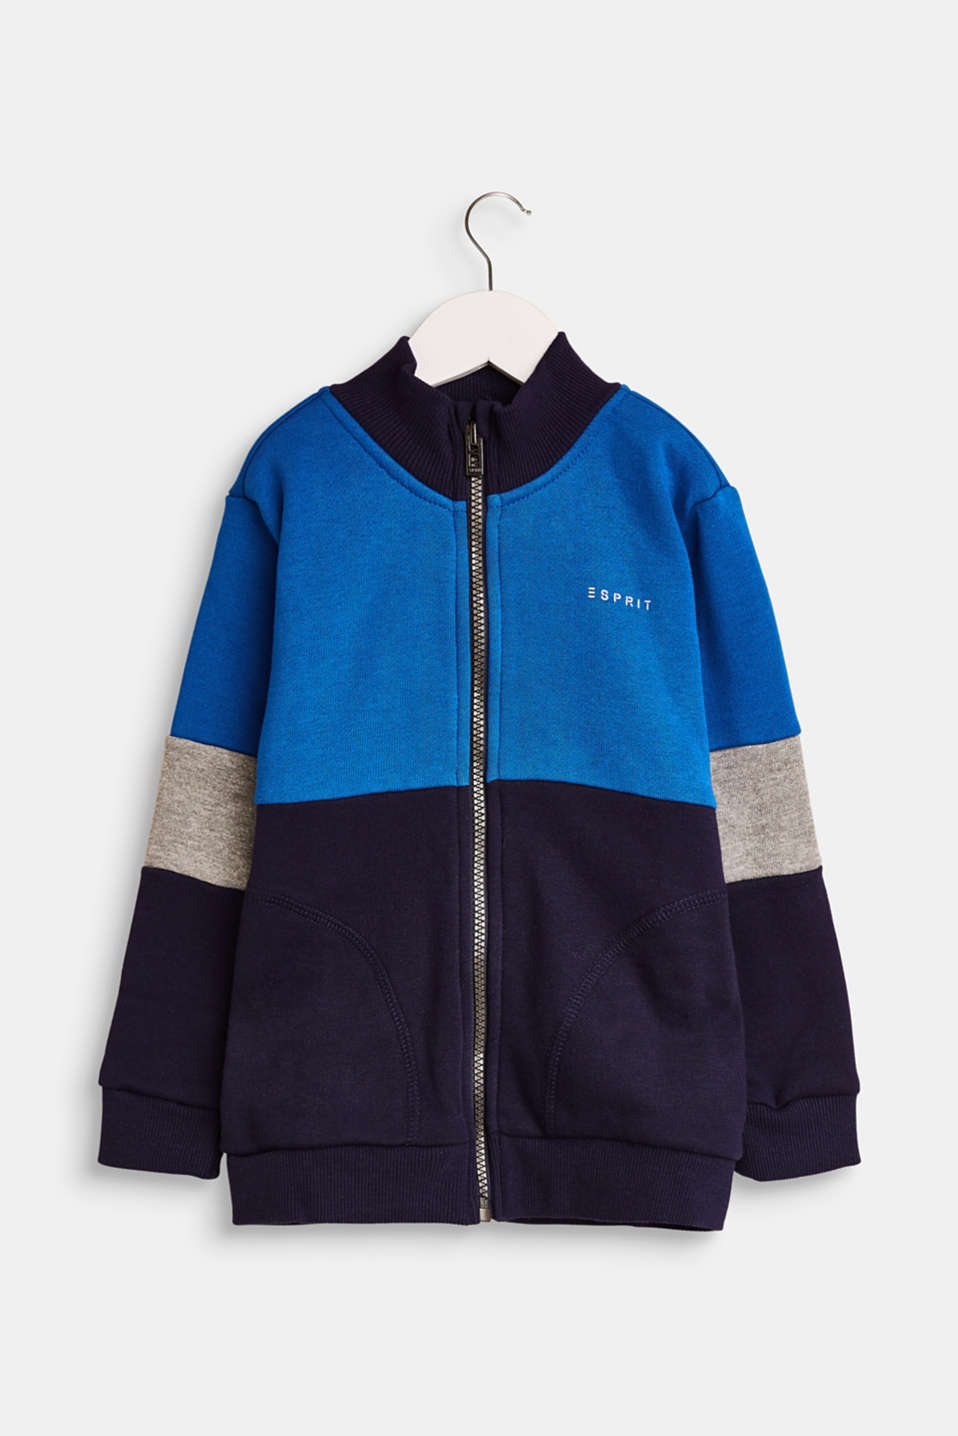 Esprit - Colour block sweatshirt fabric cardigan composed of blended cotton